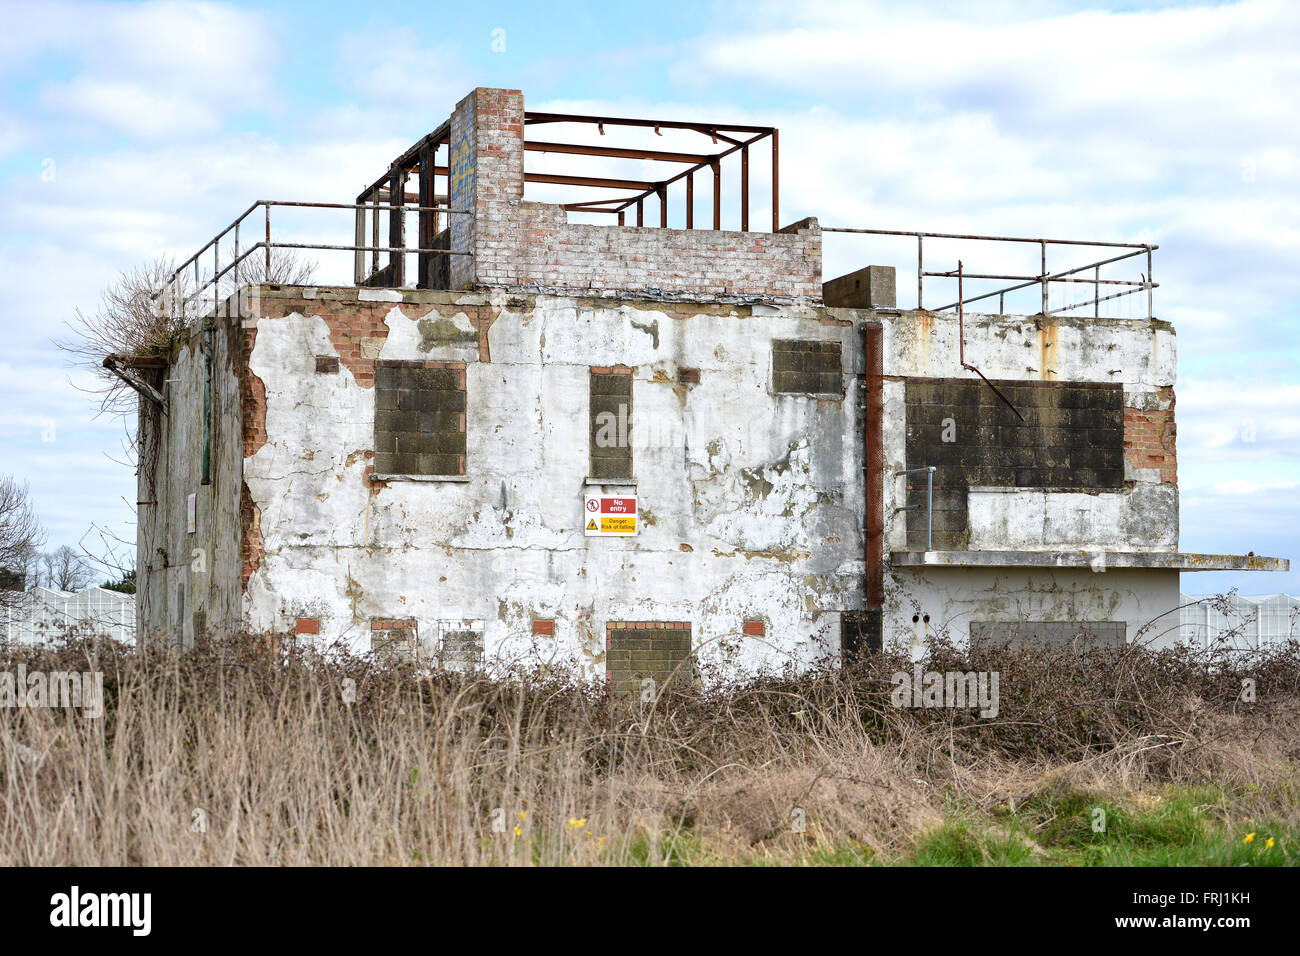 RAF Tangmere disused WWII control tower number 9, Chichester, UK - Stock Image